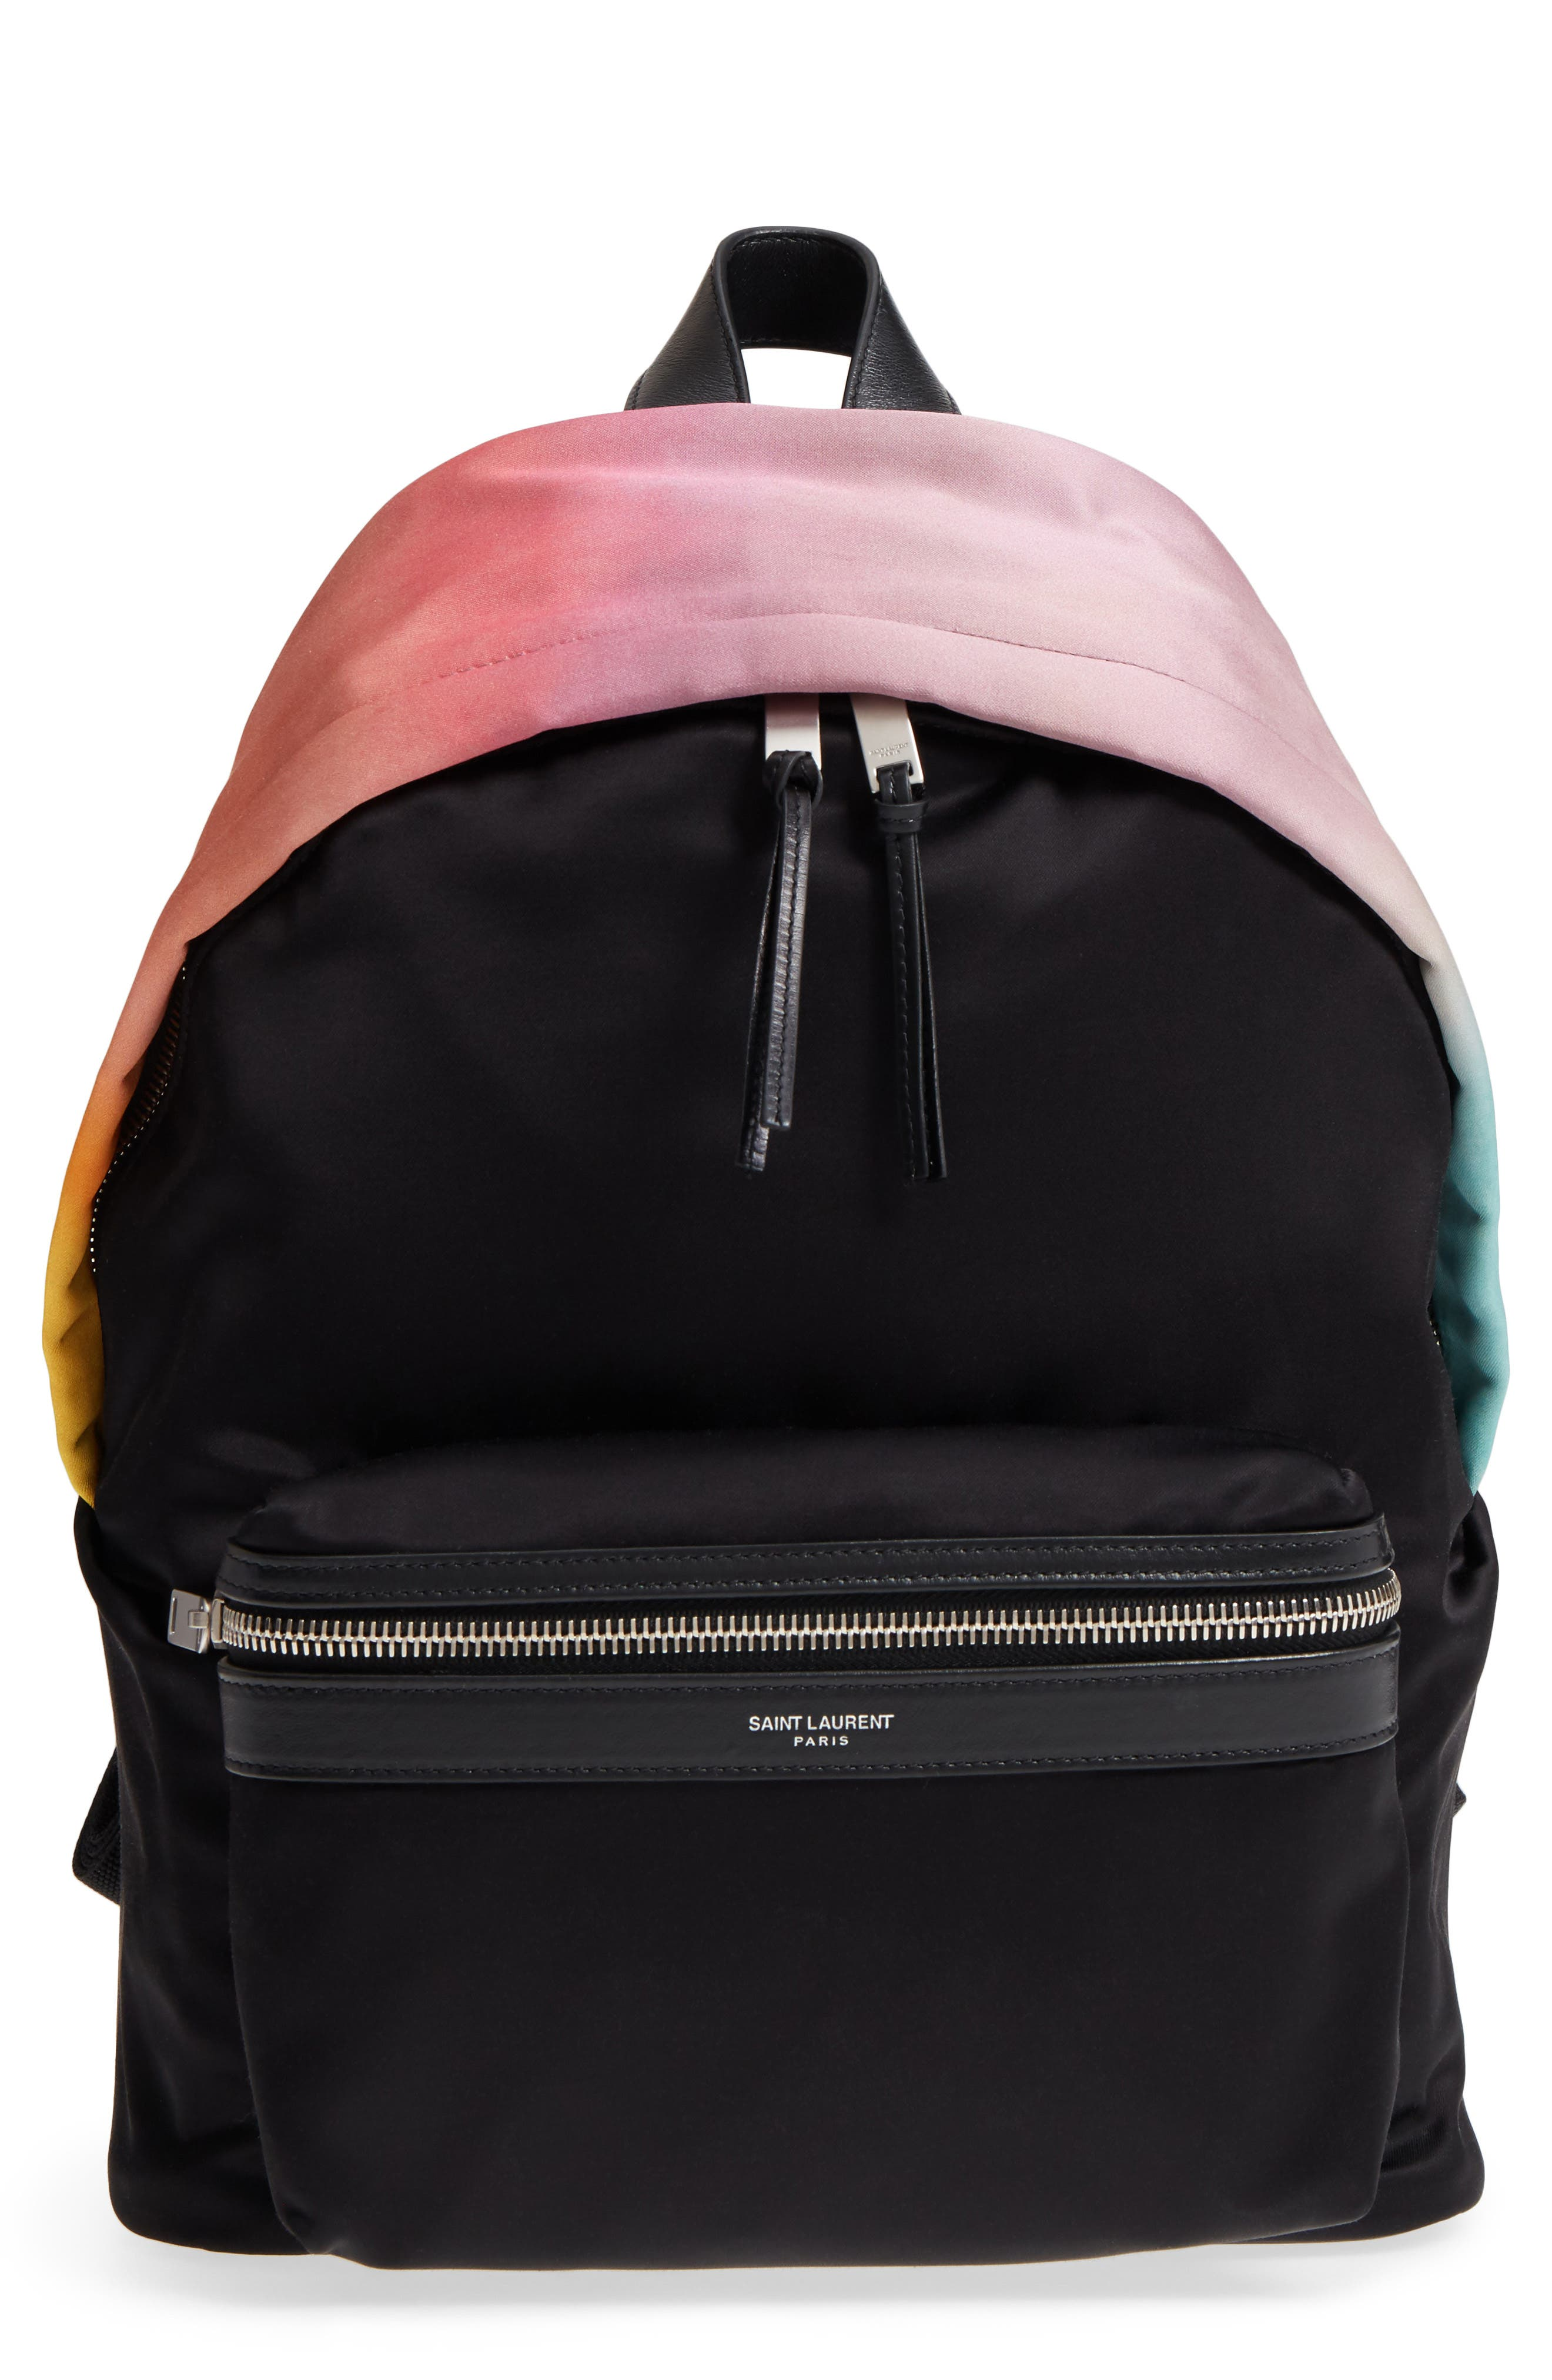 City Ombré Print Satin Backpack,                             Main thumbnail 1, color,                             Pink Multi